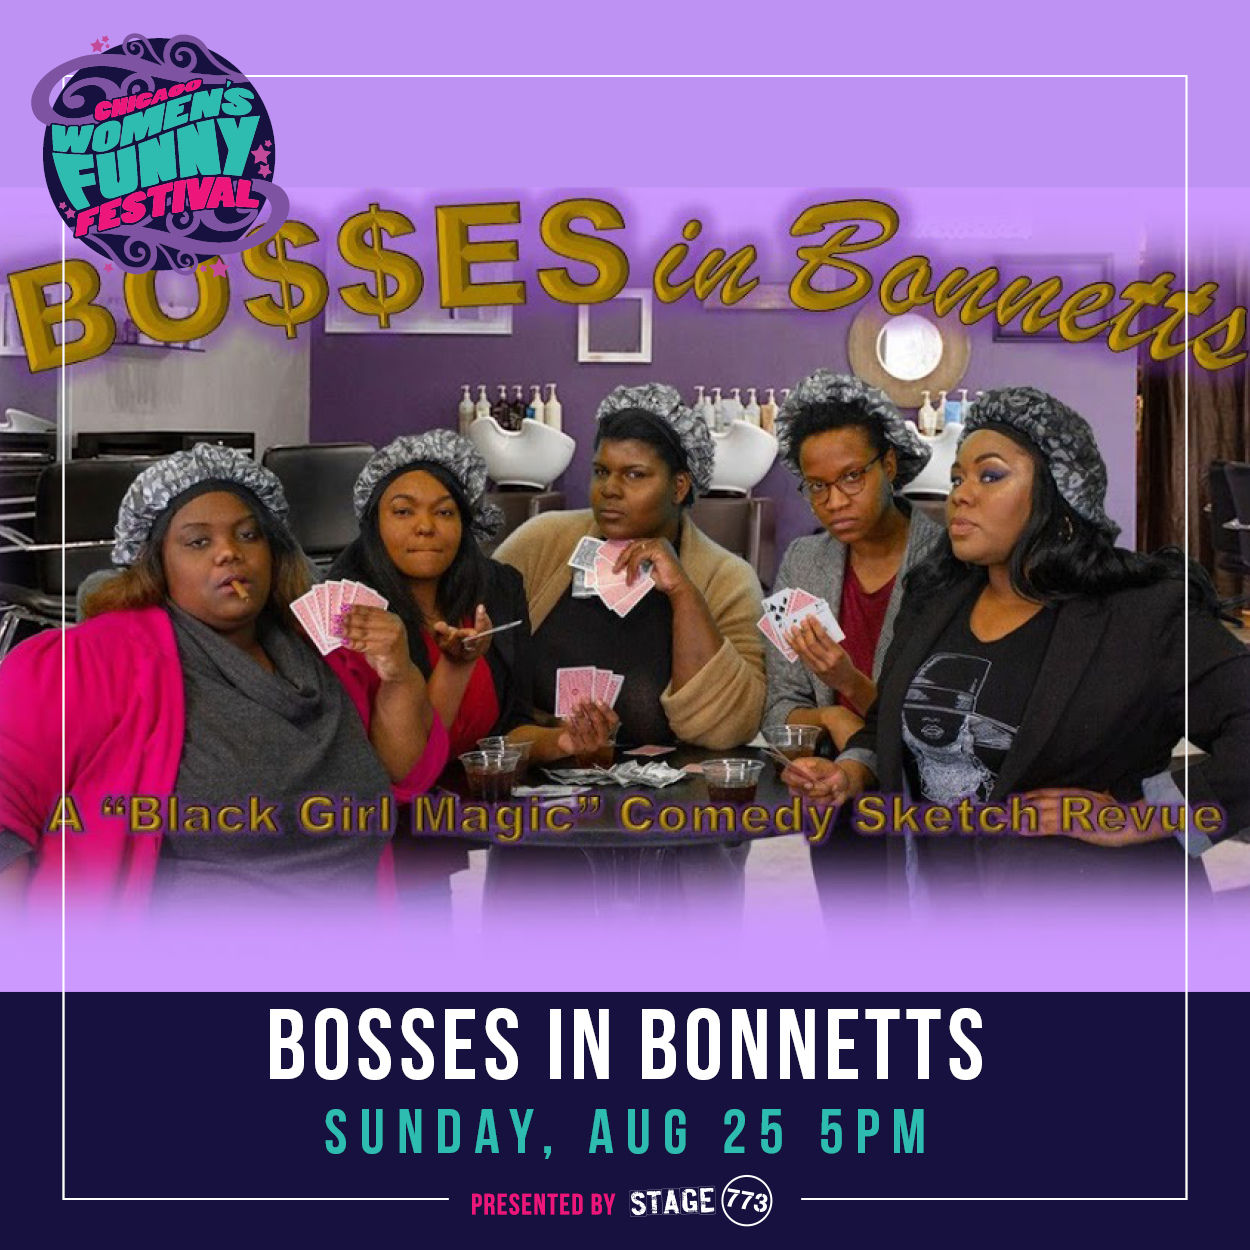 BossesinBonnetts_Sunday_5PM_CWFF20196.jpg